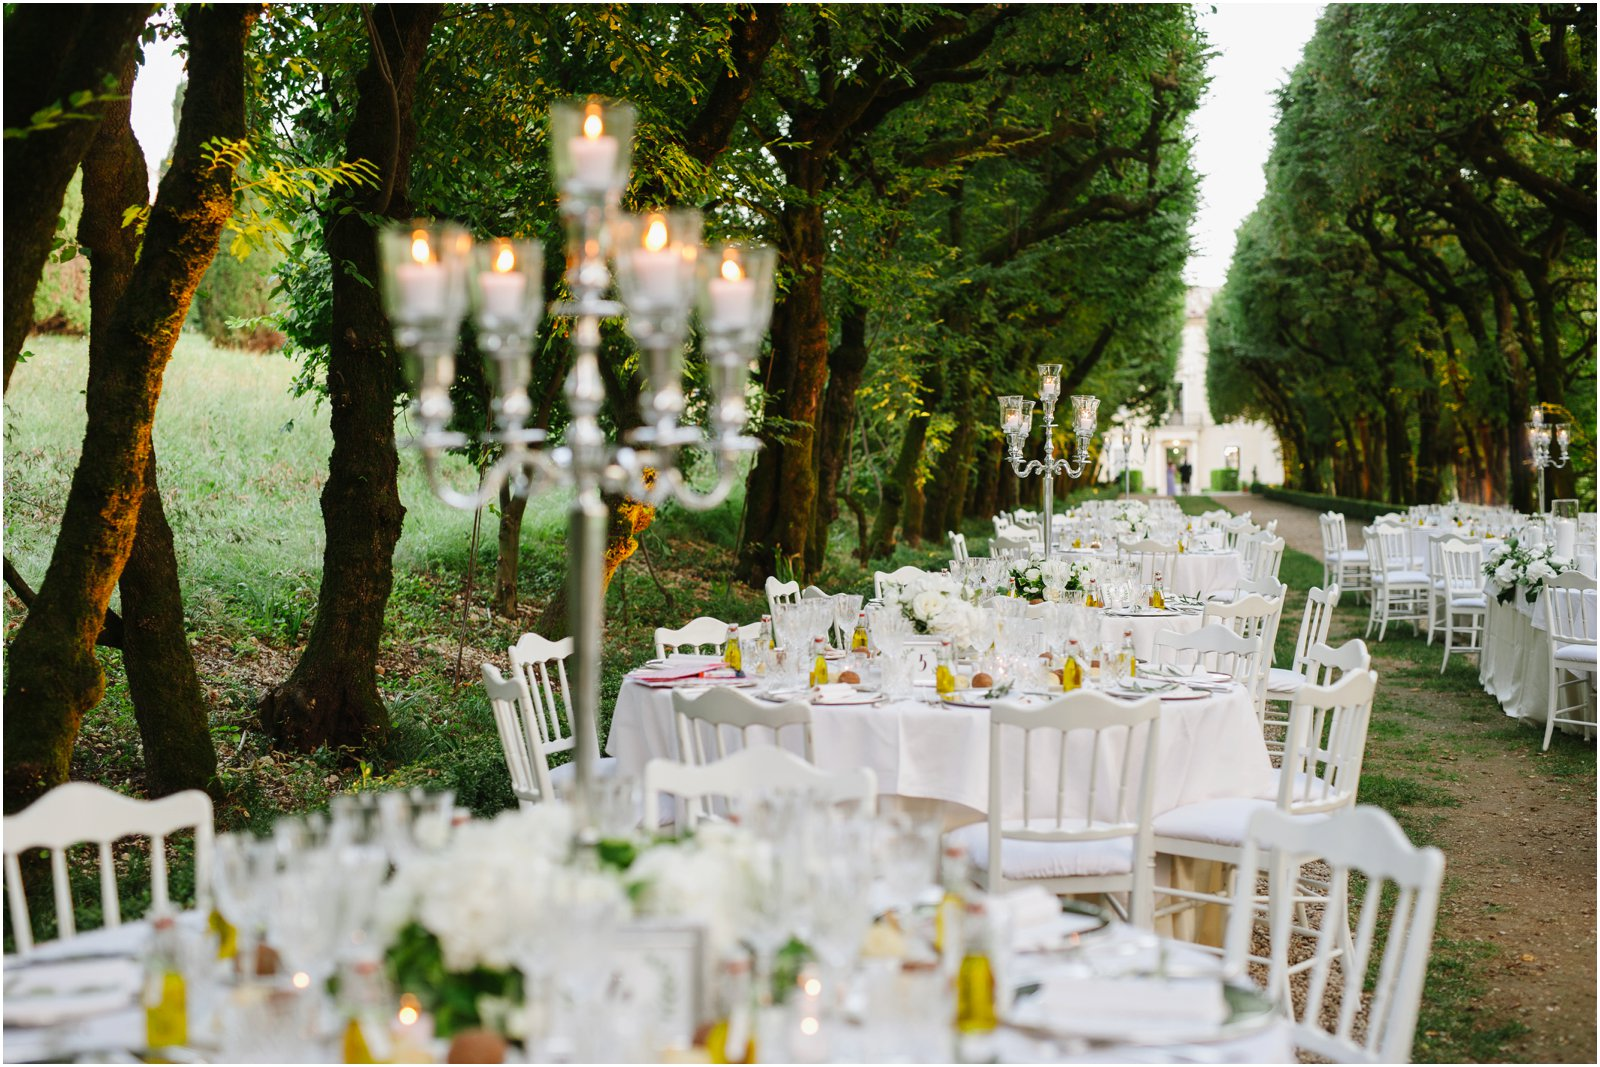 Matrimonio In Verona : Villa matrimonio verona foorevent wedding planner